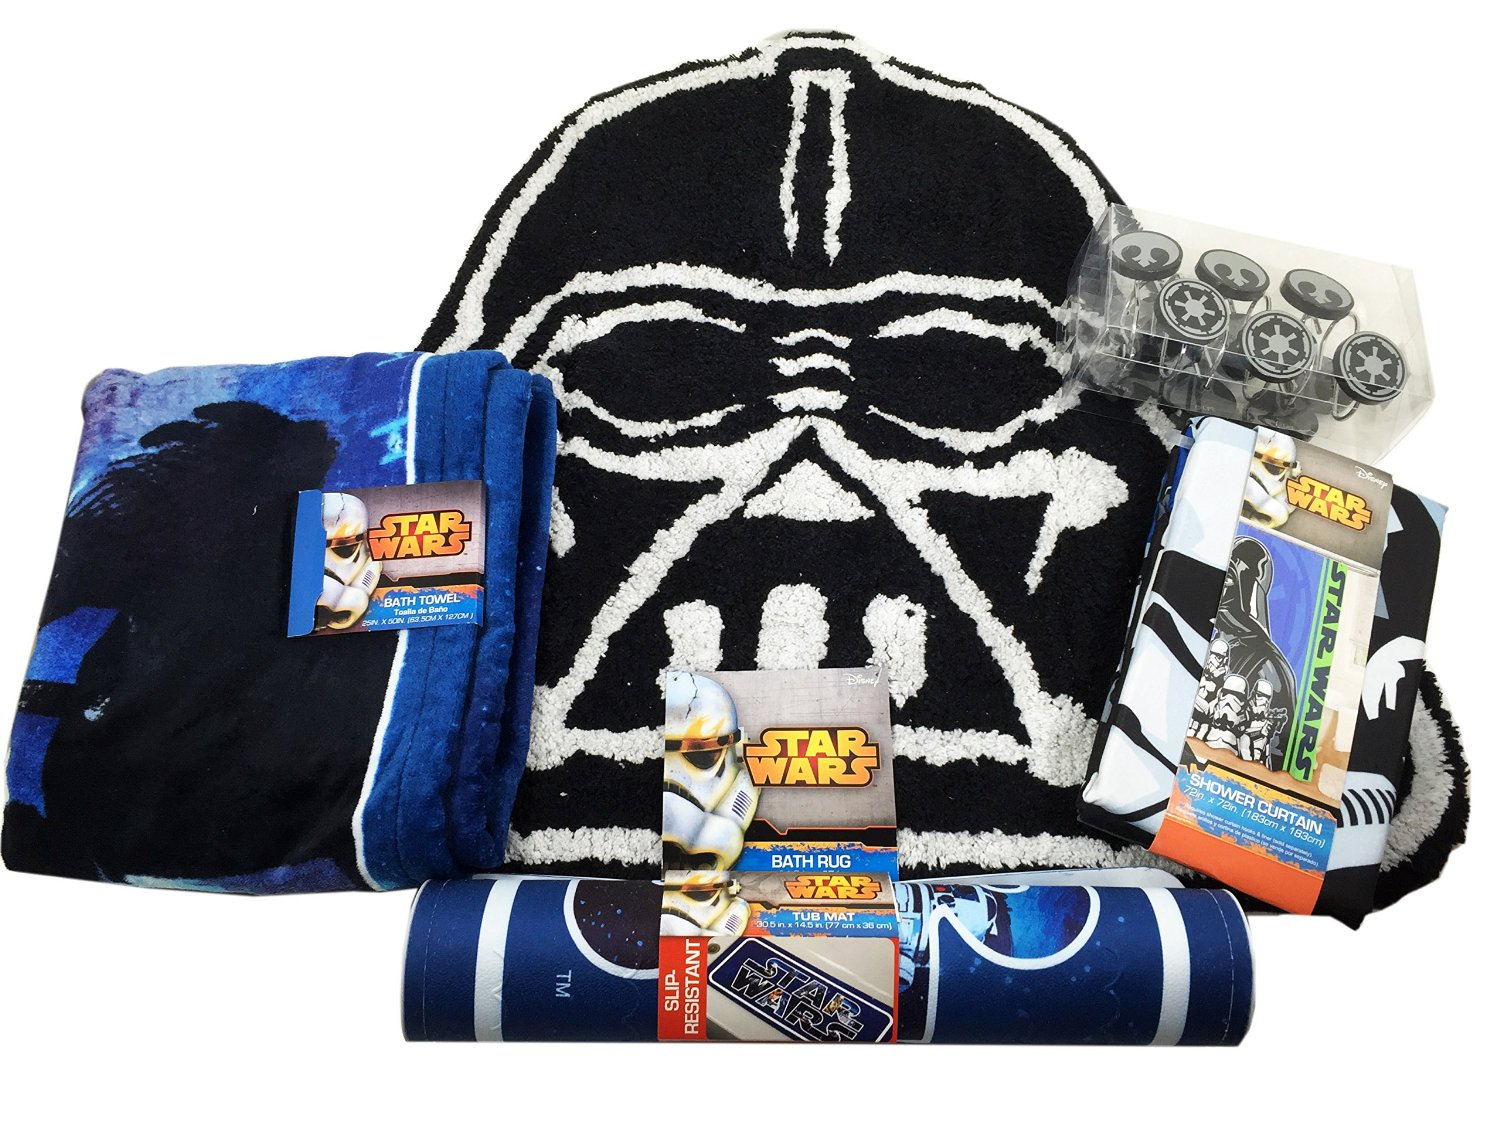 Star Wars Bathroom Set, Shower Curtain, Hooks, Bath Rug, Bath Towel, and Bath Tub Mat